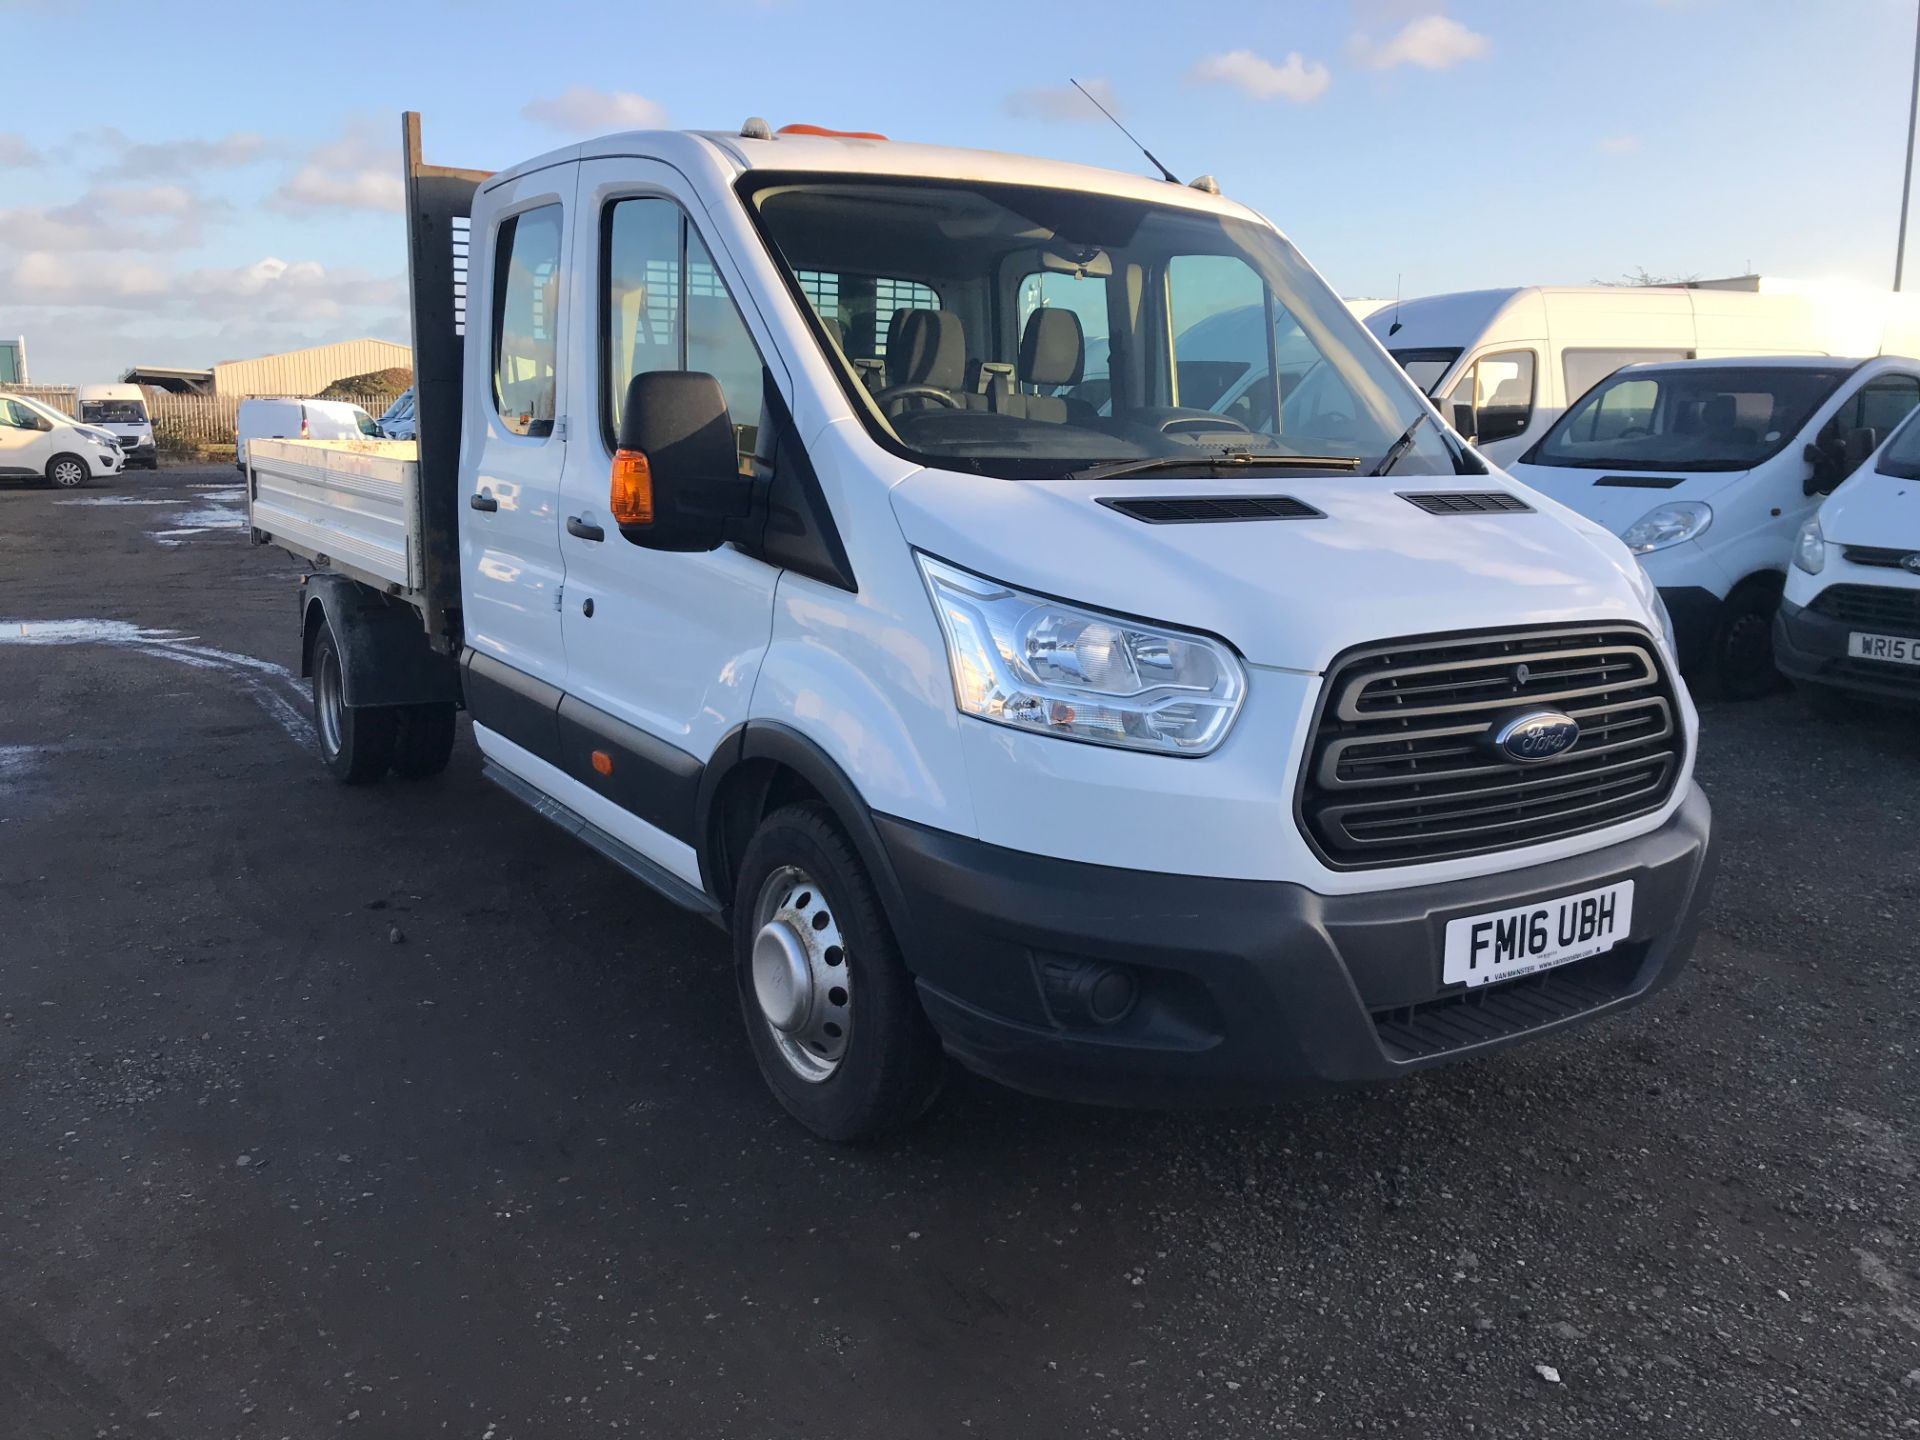 2016 Ford Transit 2.2 Tdci 125Ps Double Cab Chassis (FM16UBH)